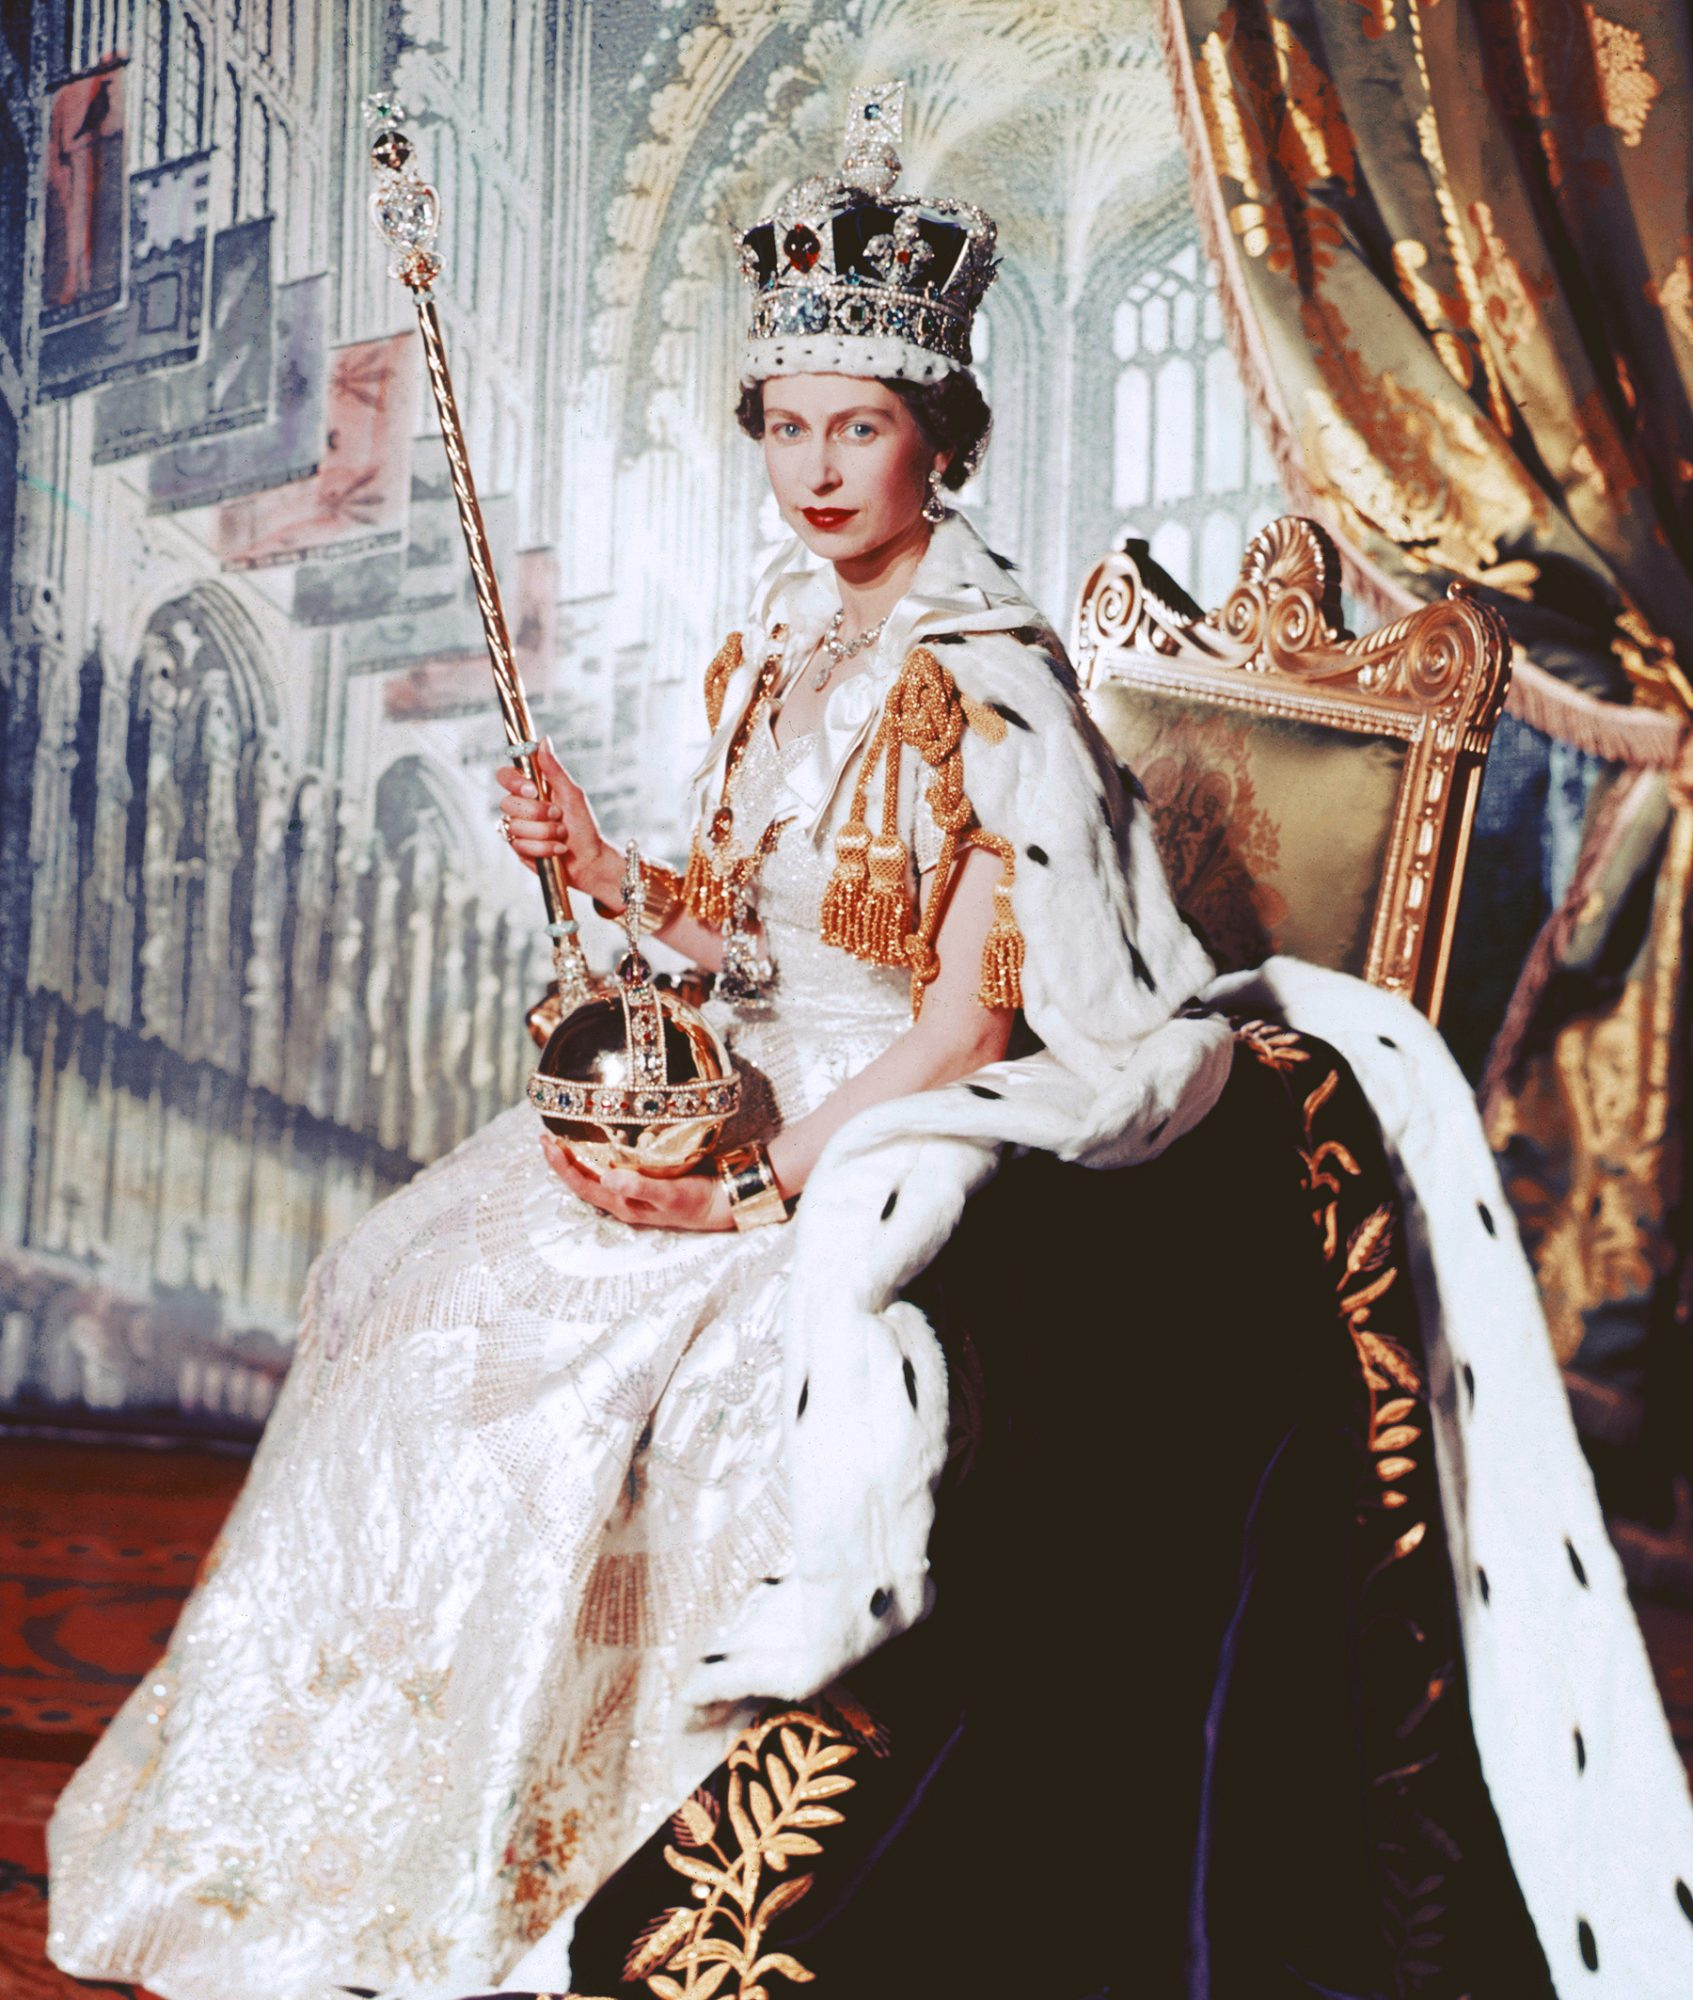 The Crown! The Crowd! Remembering Queen Elizabeth's Coronation 65 Years Ago coronation-portait